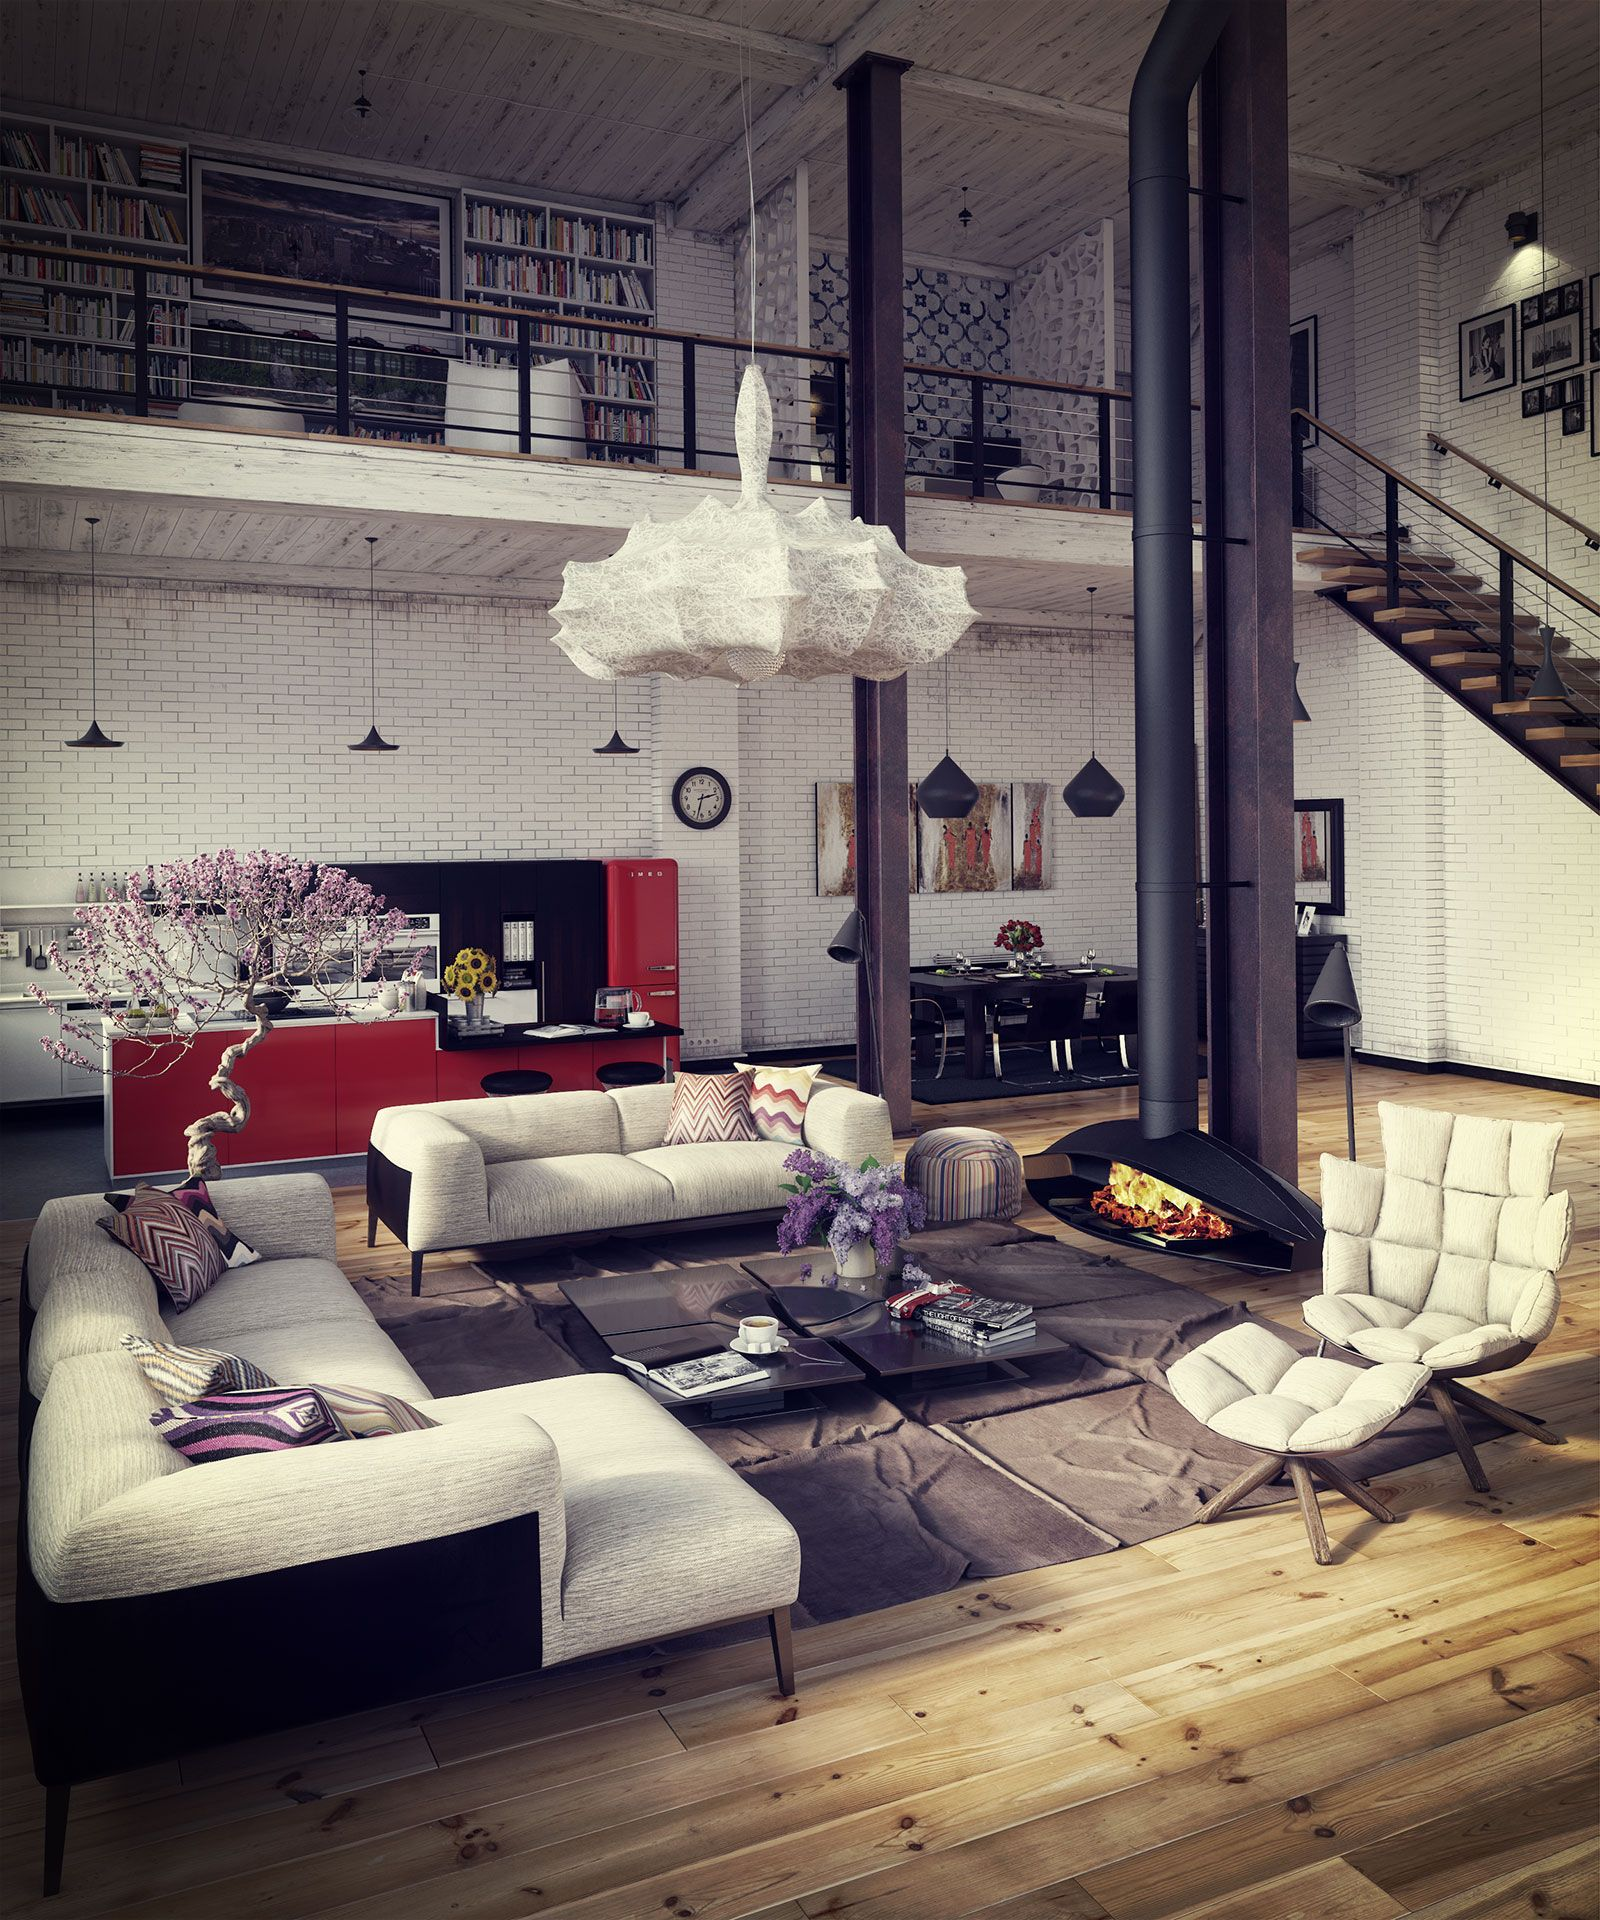 Apartments also studio inner design pinterest lofts and interiors rh